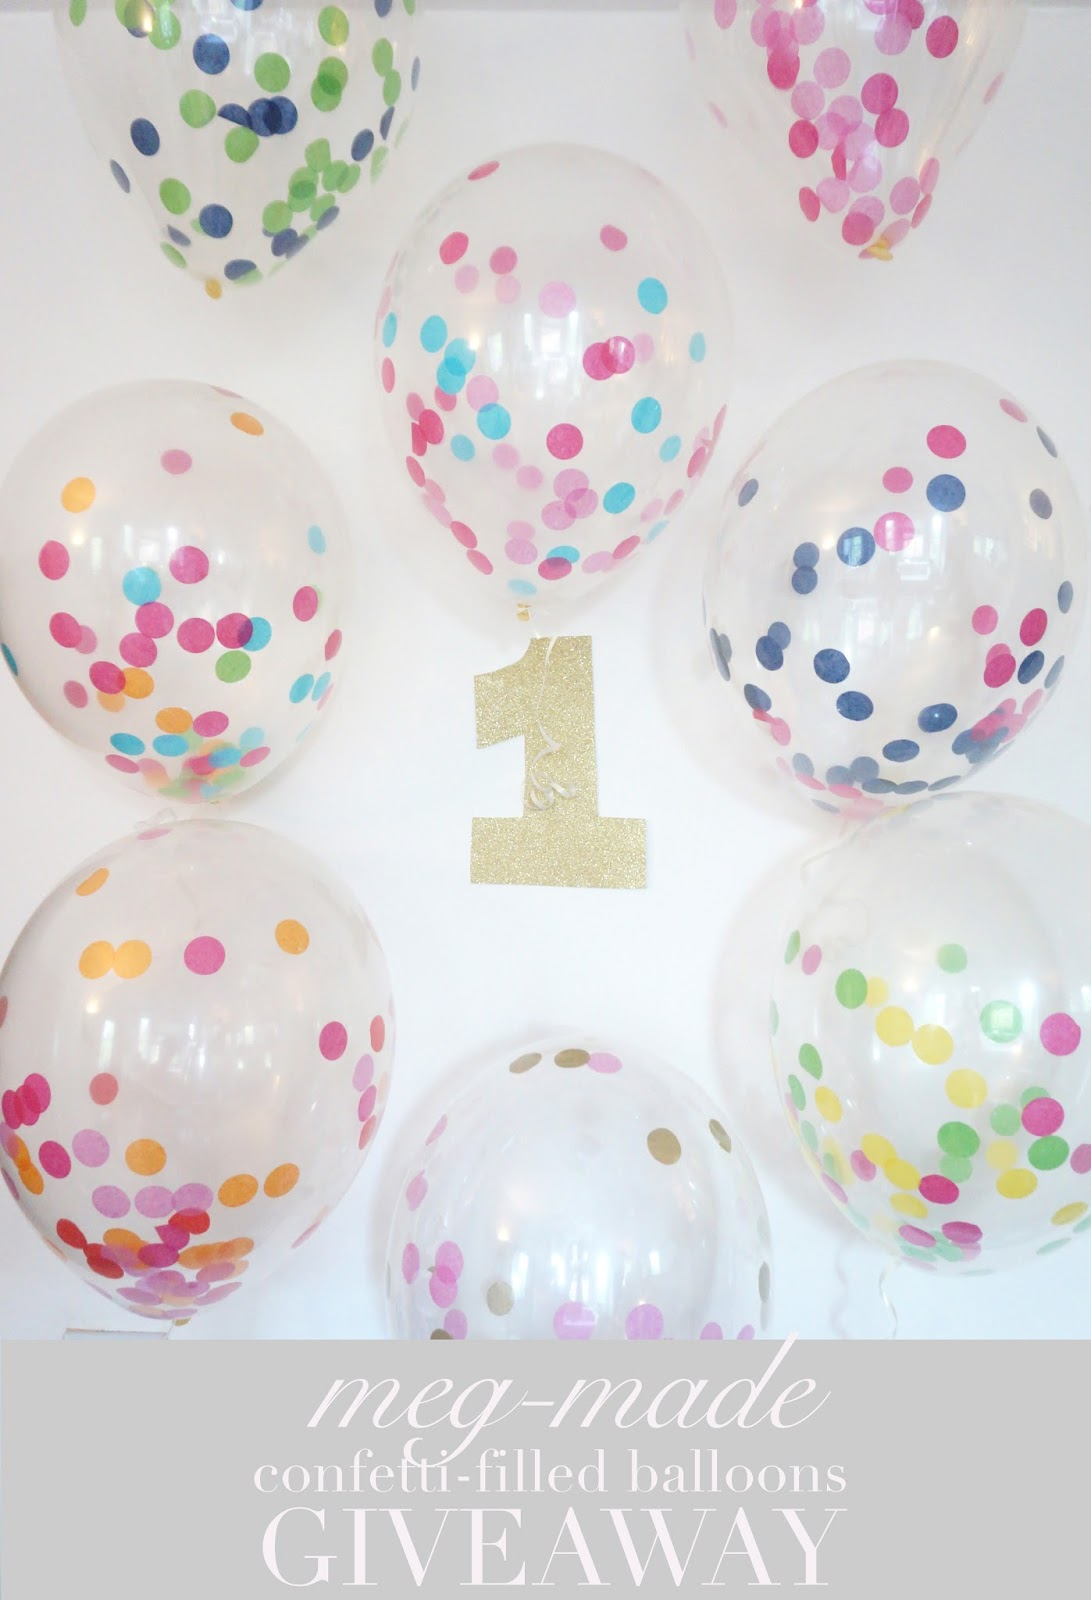 meg-made confetti filled balloons GIVEAWAY